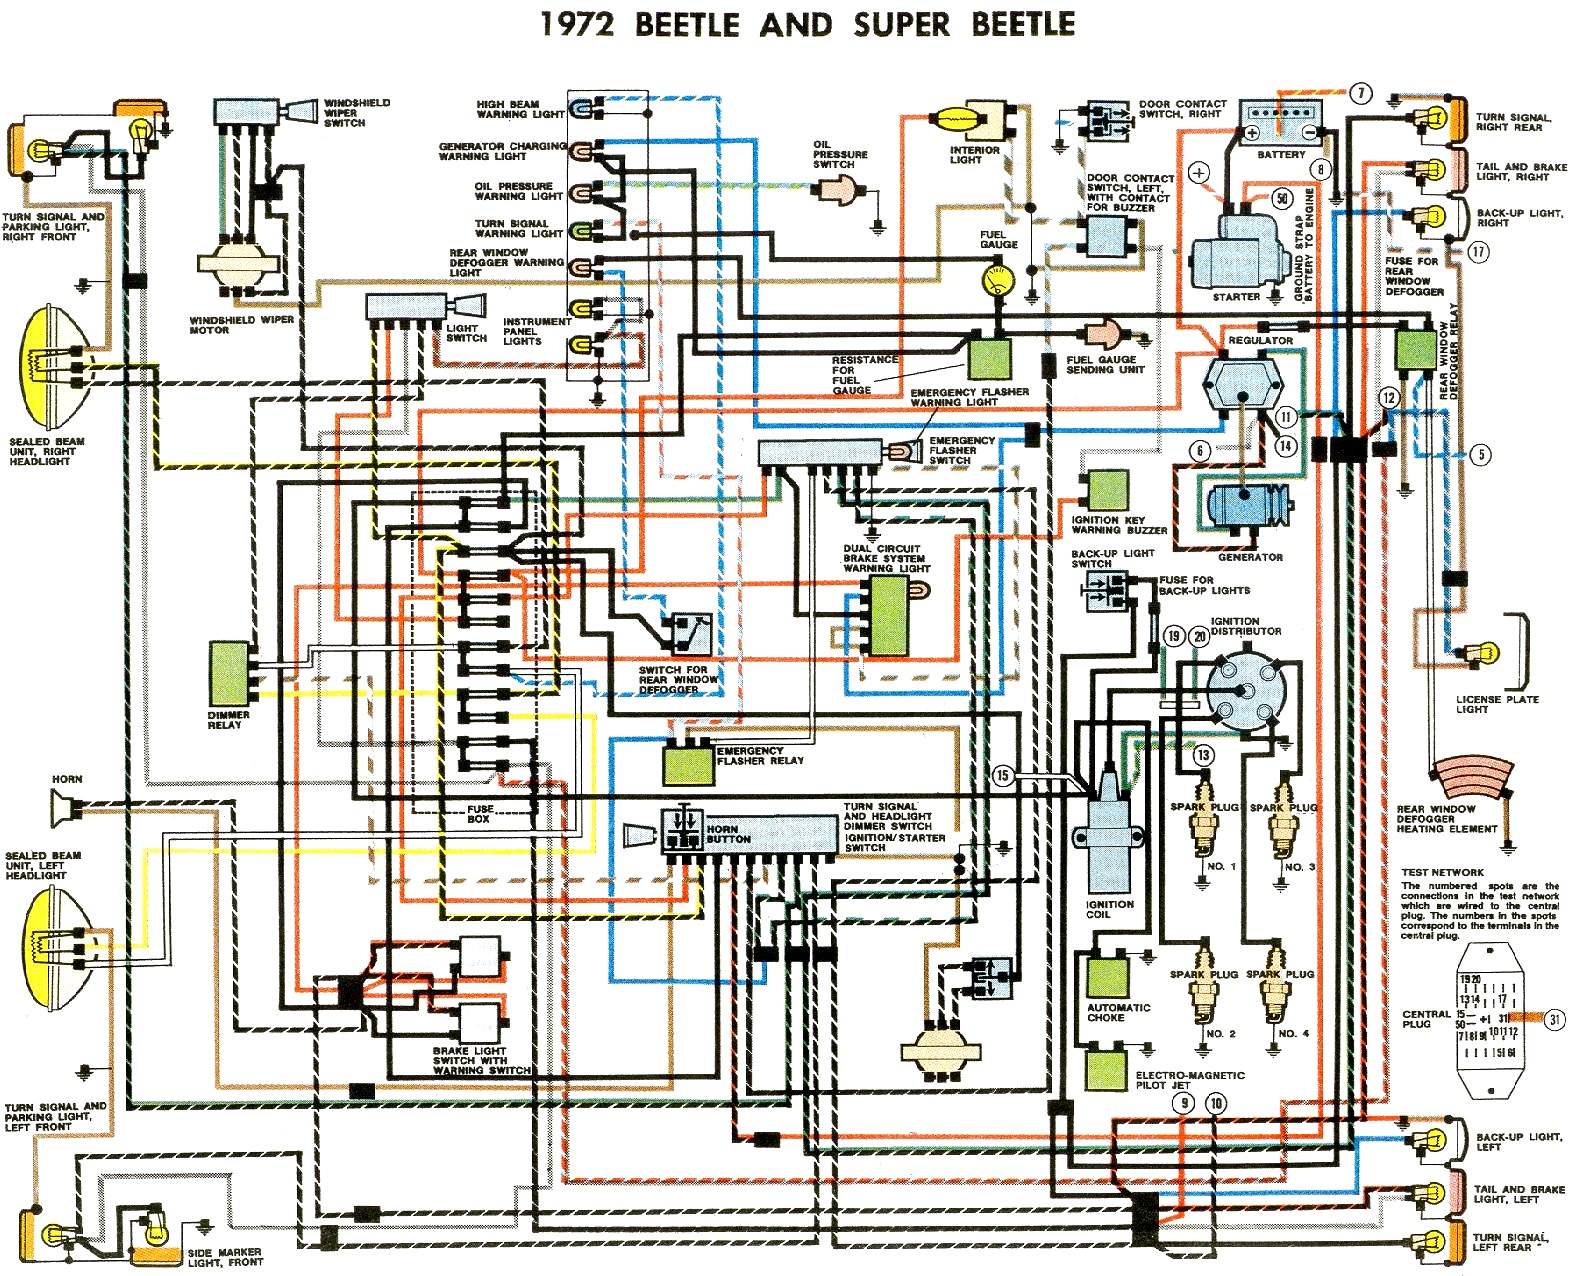 40E9 Vw Bora Wiring Diagram Download | Wiring ResourcesWiring Resources